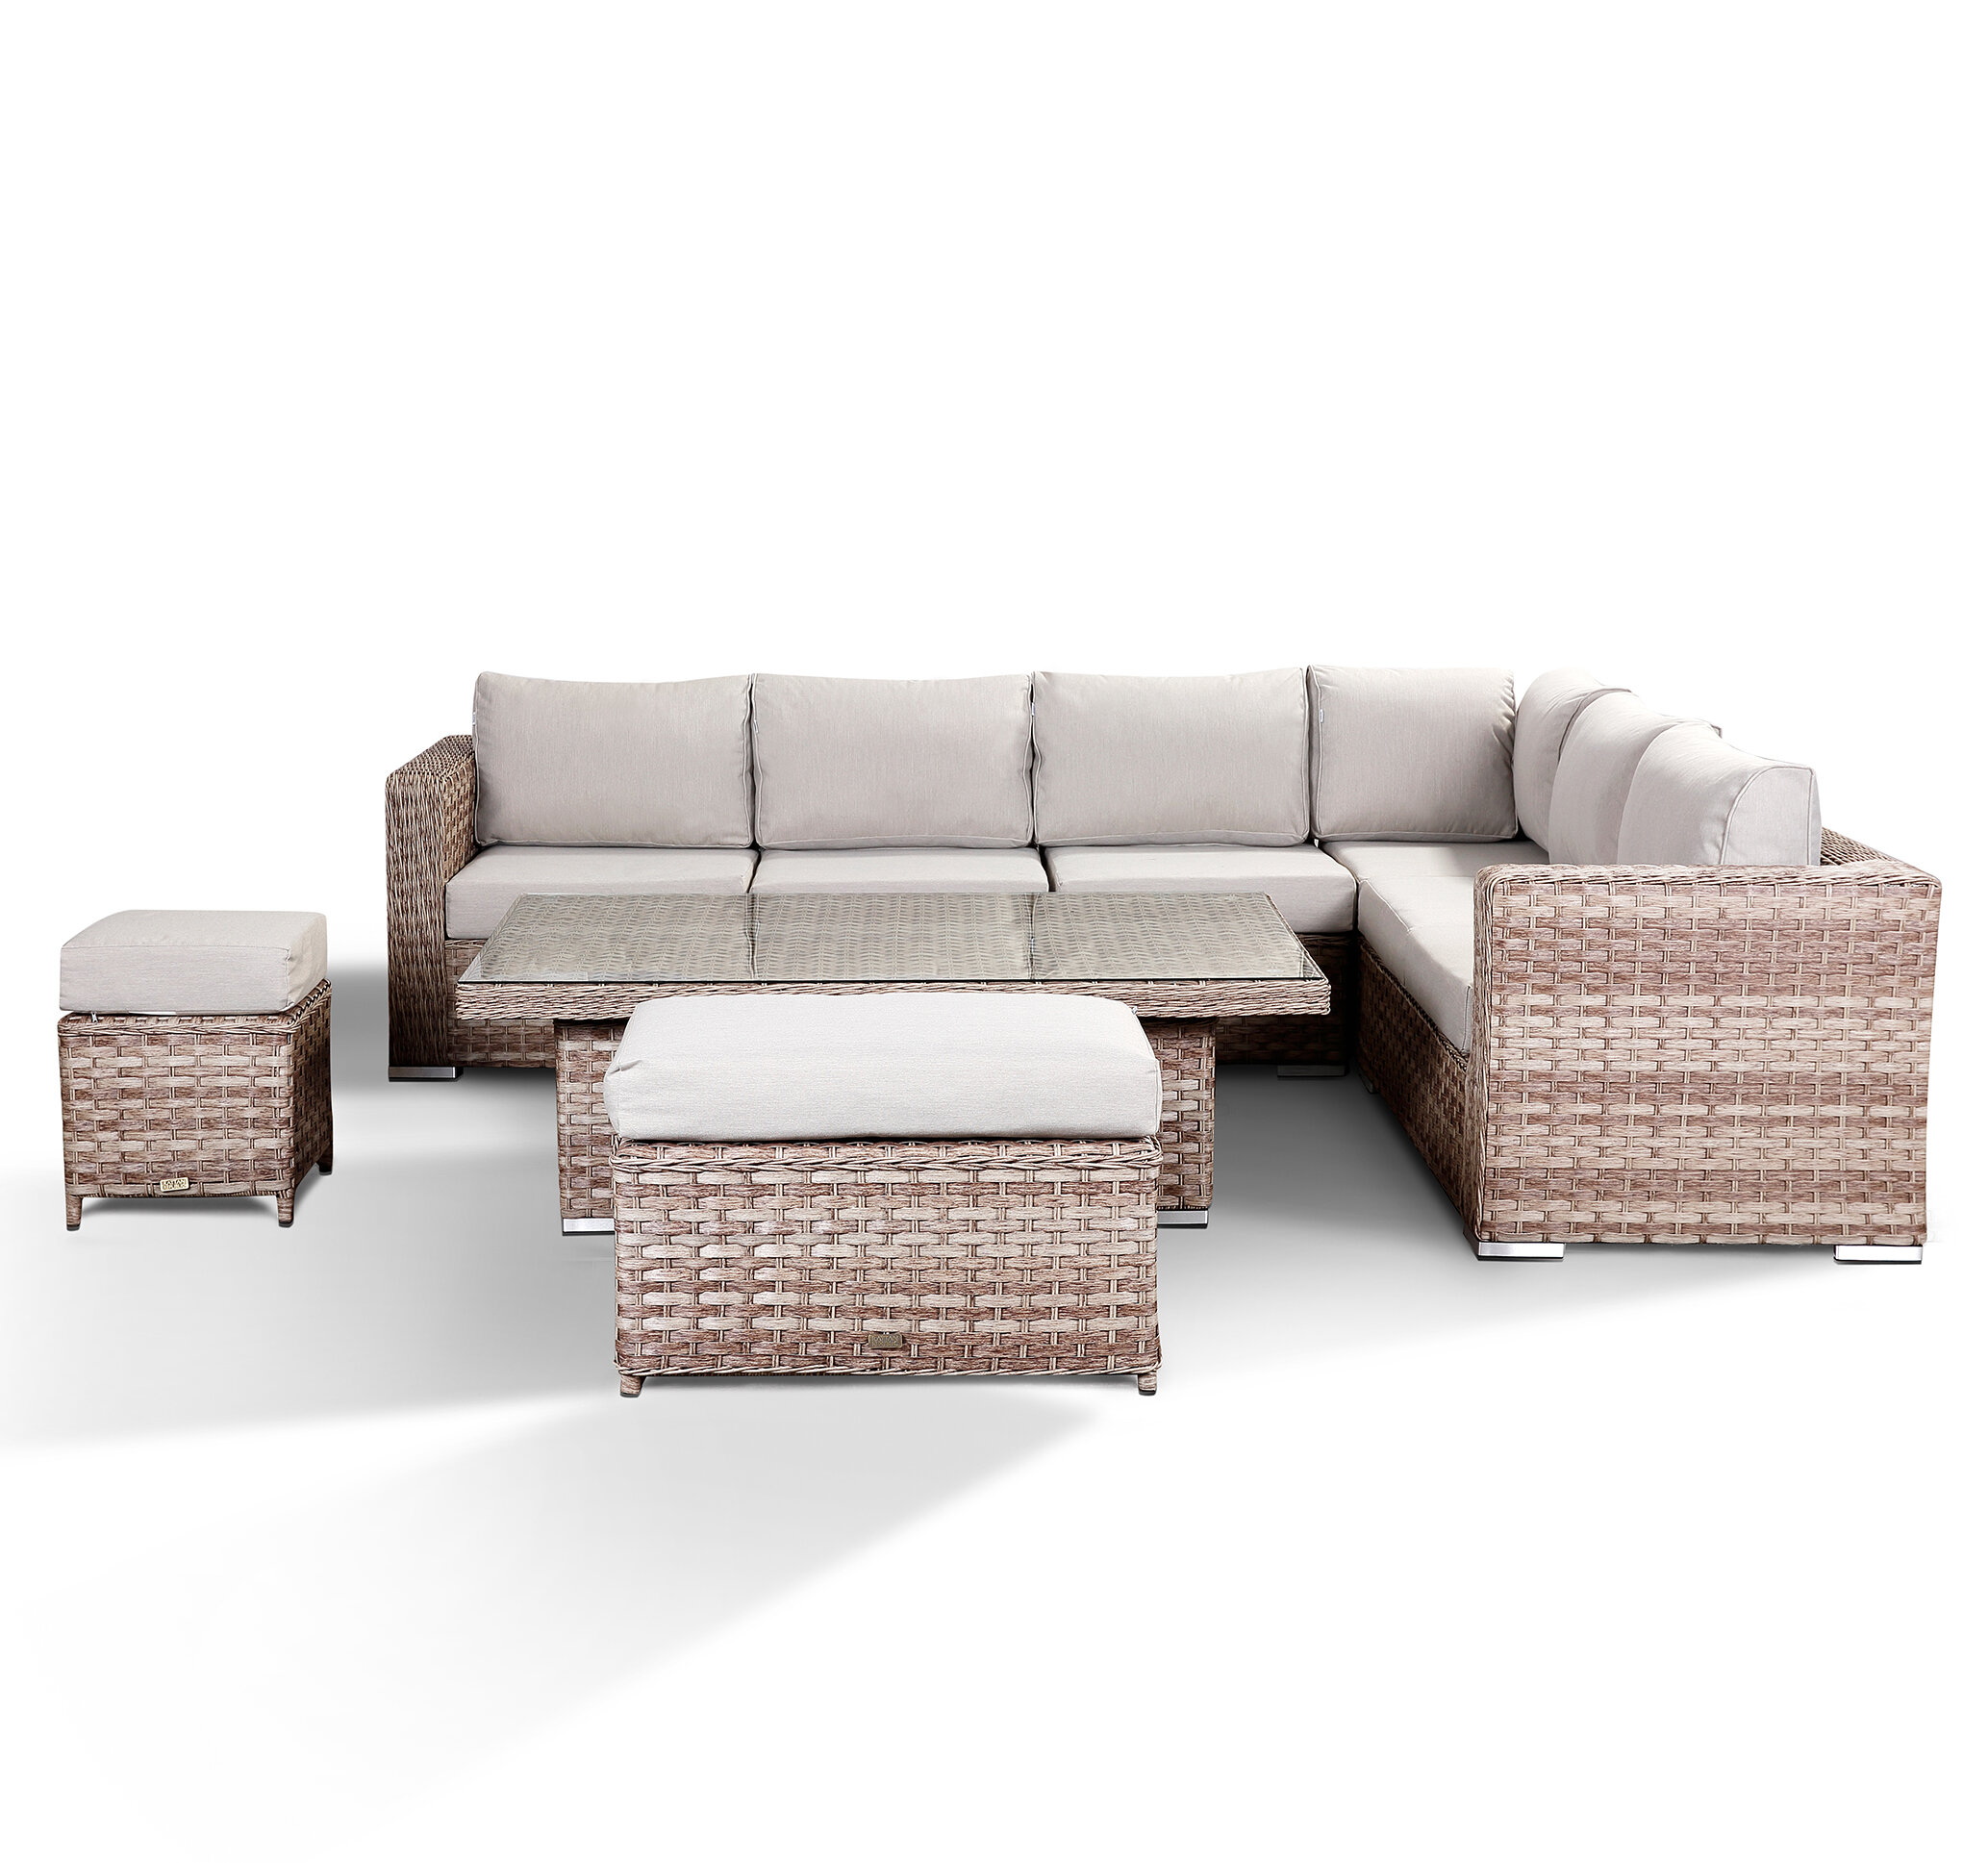 Azure Grey Corner Sofa With Coffee Table And Stools (2018 Model)